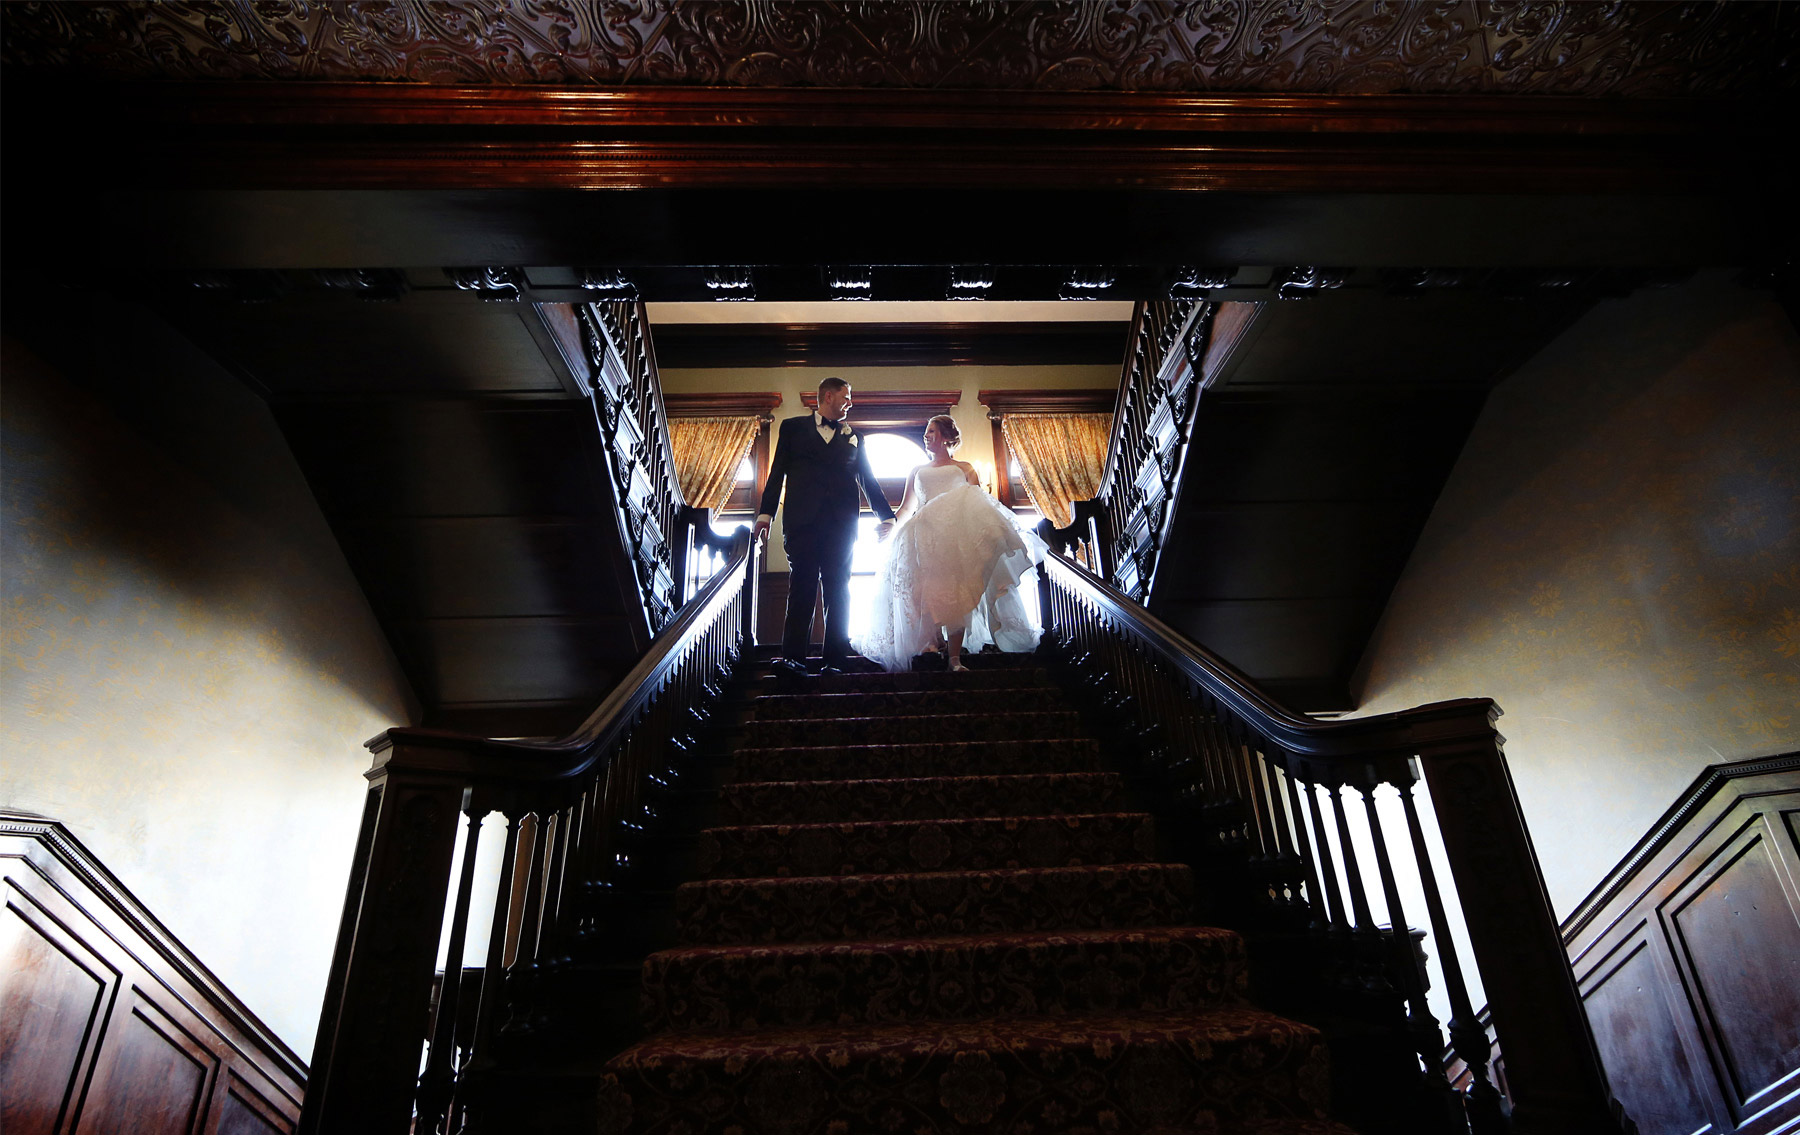 07-Minneapolis-Minnesota-Wedding-Photography-by-Vick-Photography-Semple-Mansion-First-Look-Caitlin-&-Derrick.jpg